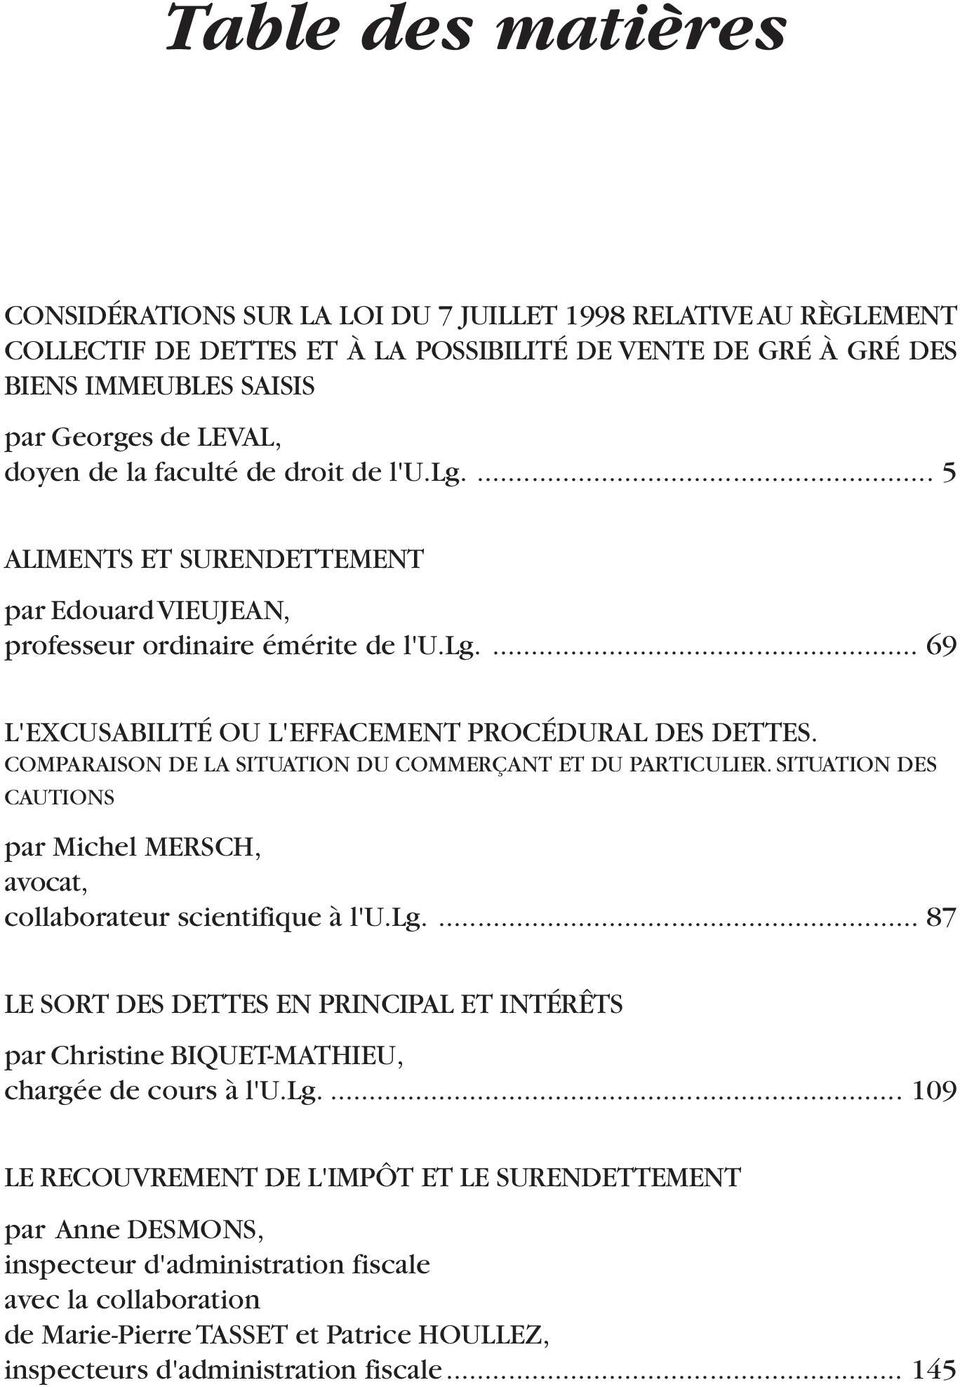 COMPARAISON DE LA SITUATION DU COMMERÇANT ET DU PARTICULIER. SITUATION DES CAUTIONS par Michel MERSCH, avocat, collaborateur scientifique à l'u.lg.